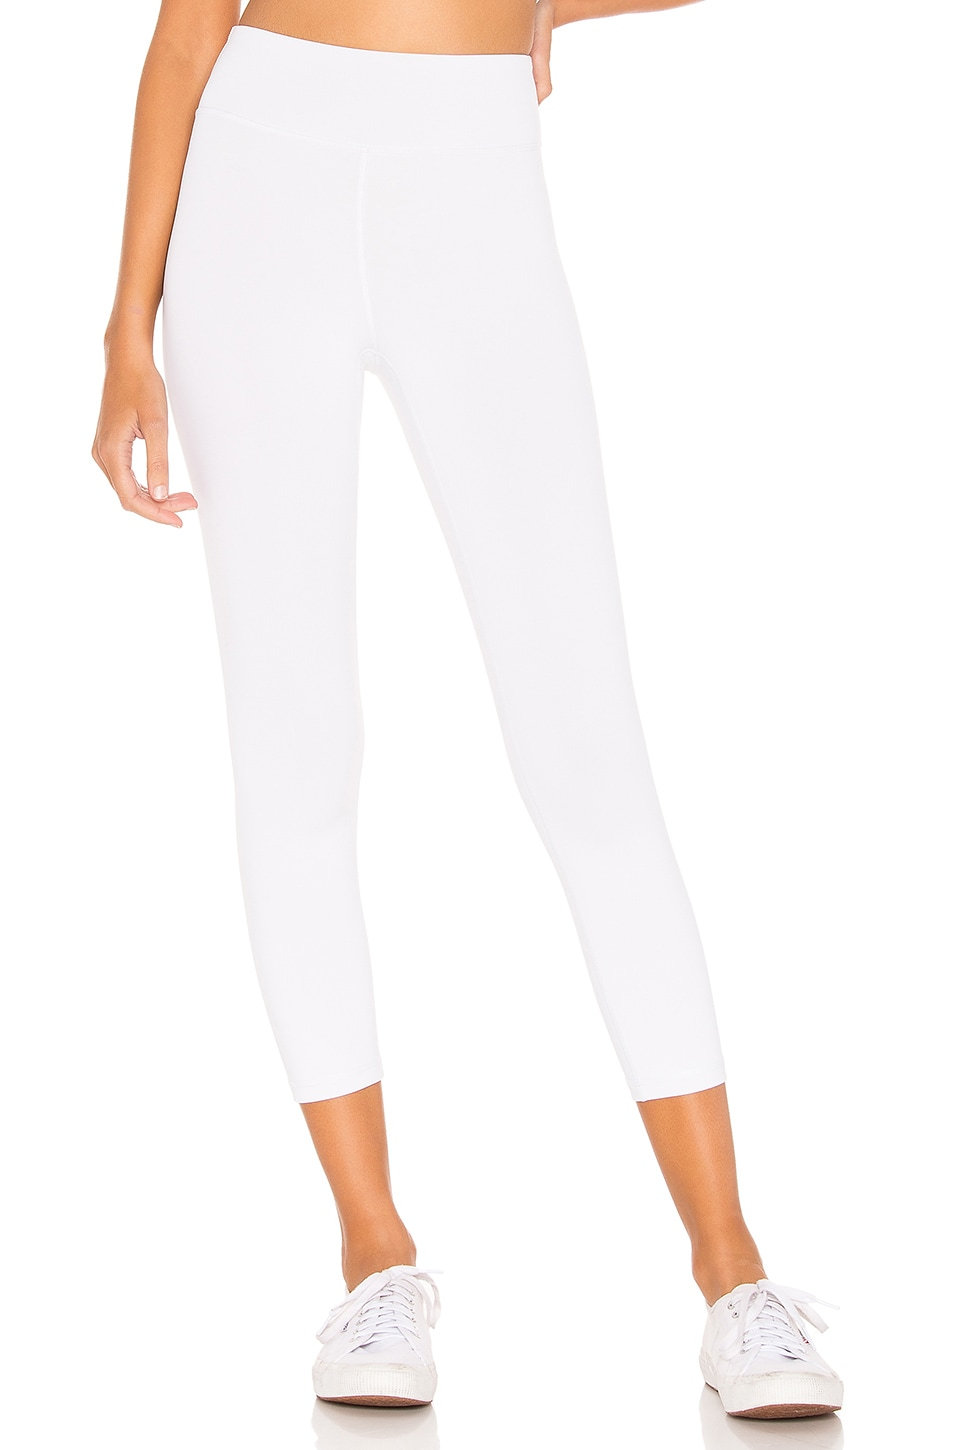 lovewave Luka Pant in White